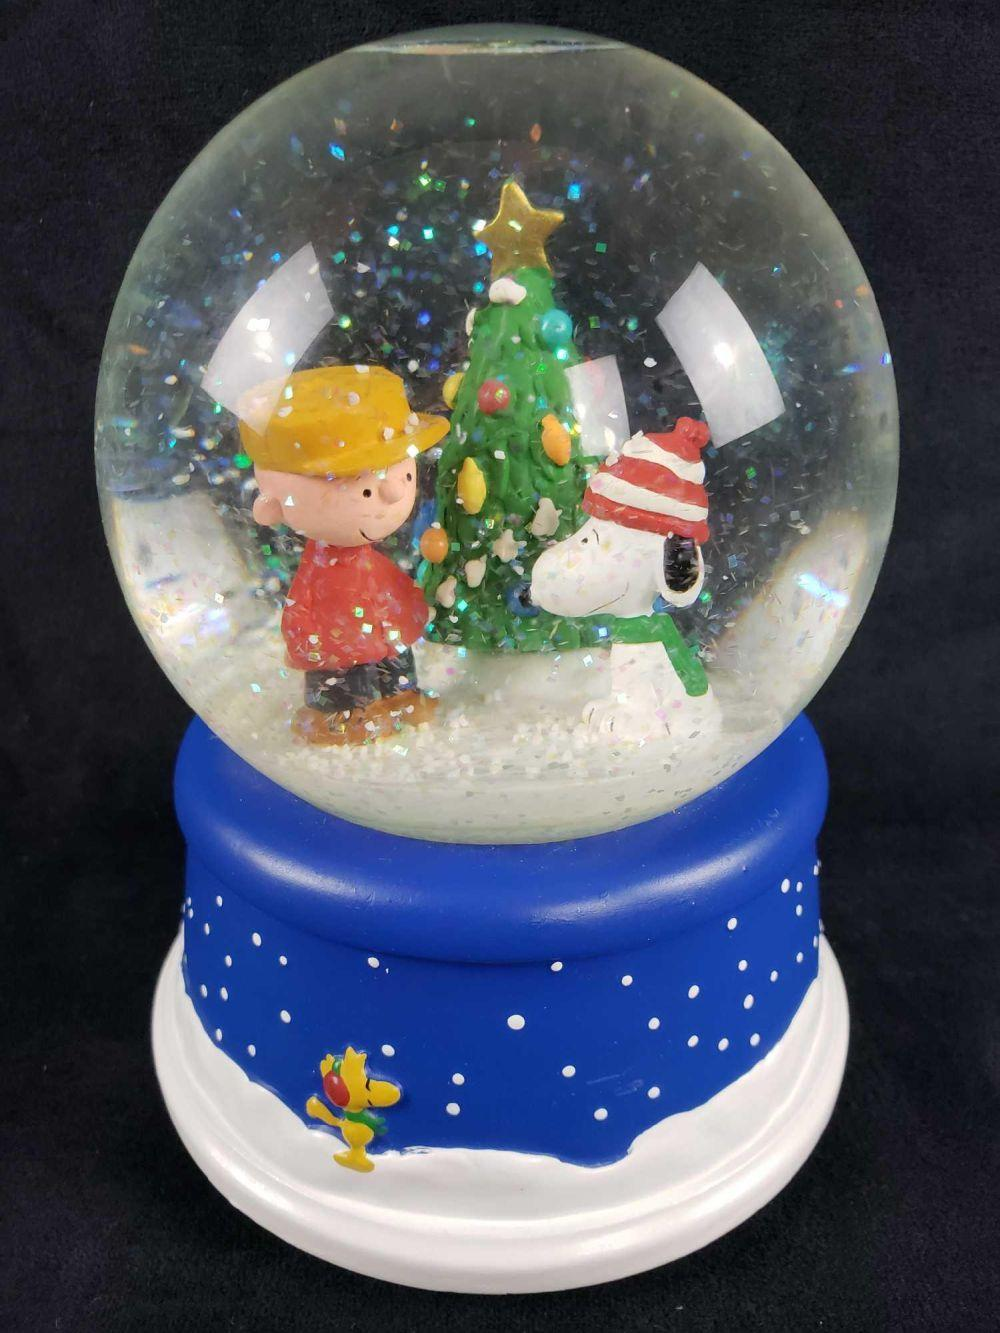 Lot 409: Peanuts Musical Snow Globe by Katrina Bricker